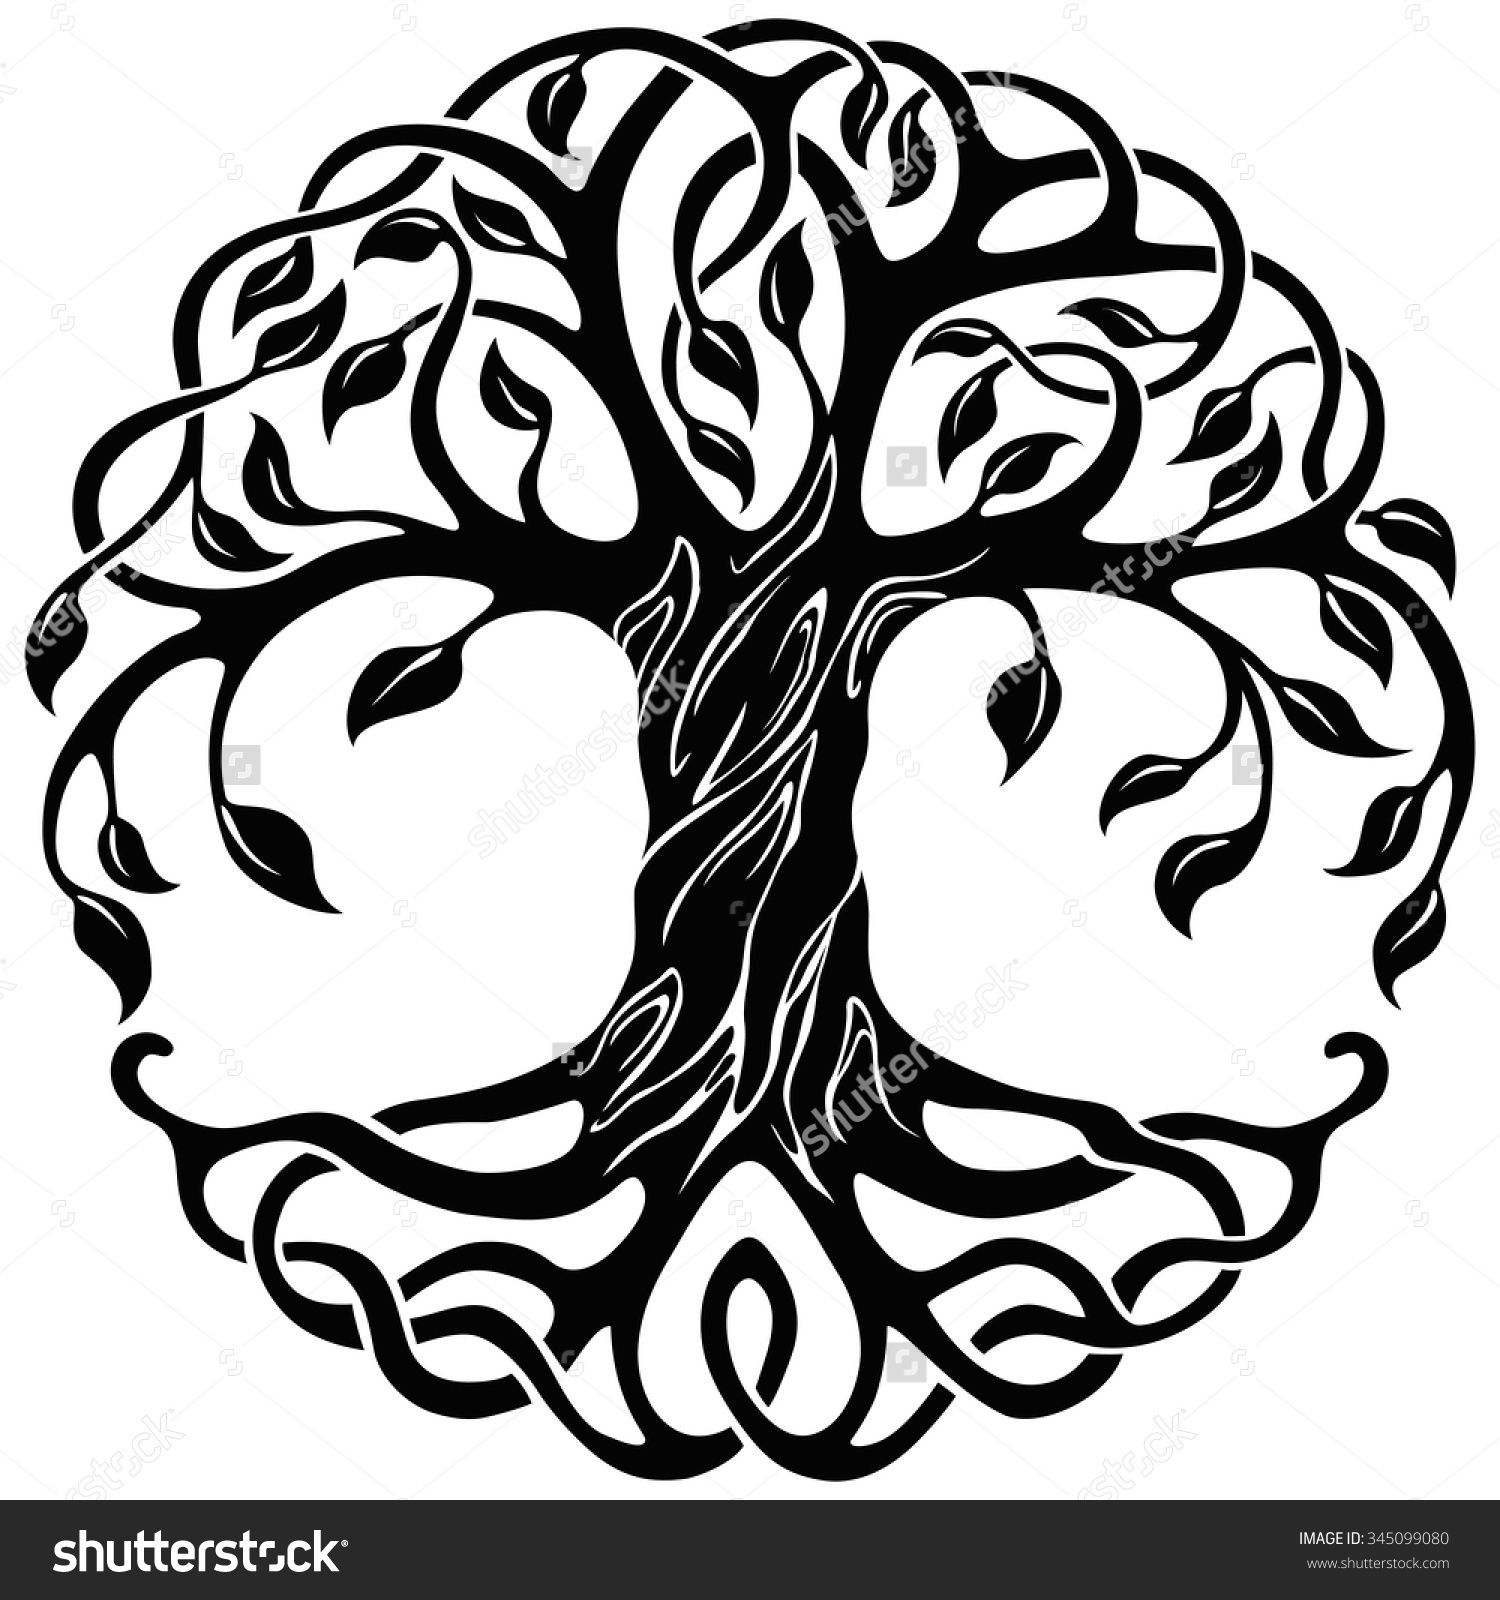 banner freeuse stock With roots celtic tattoos. Tree of life clipart.